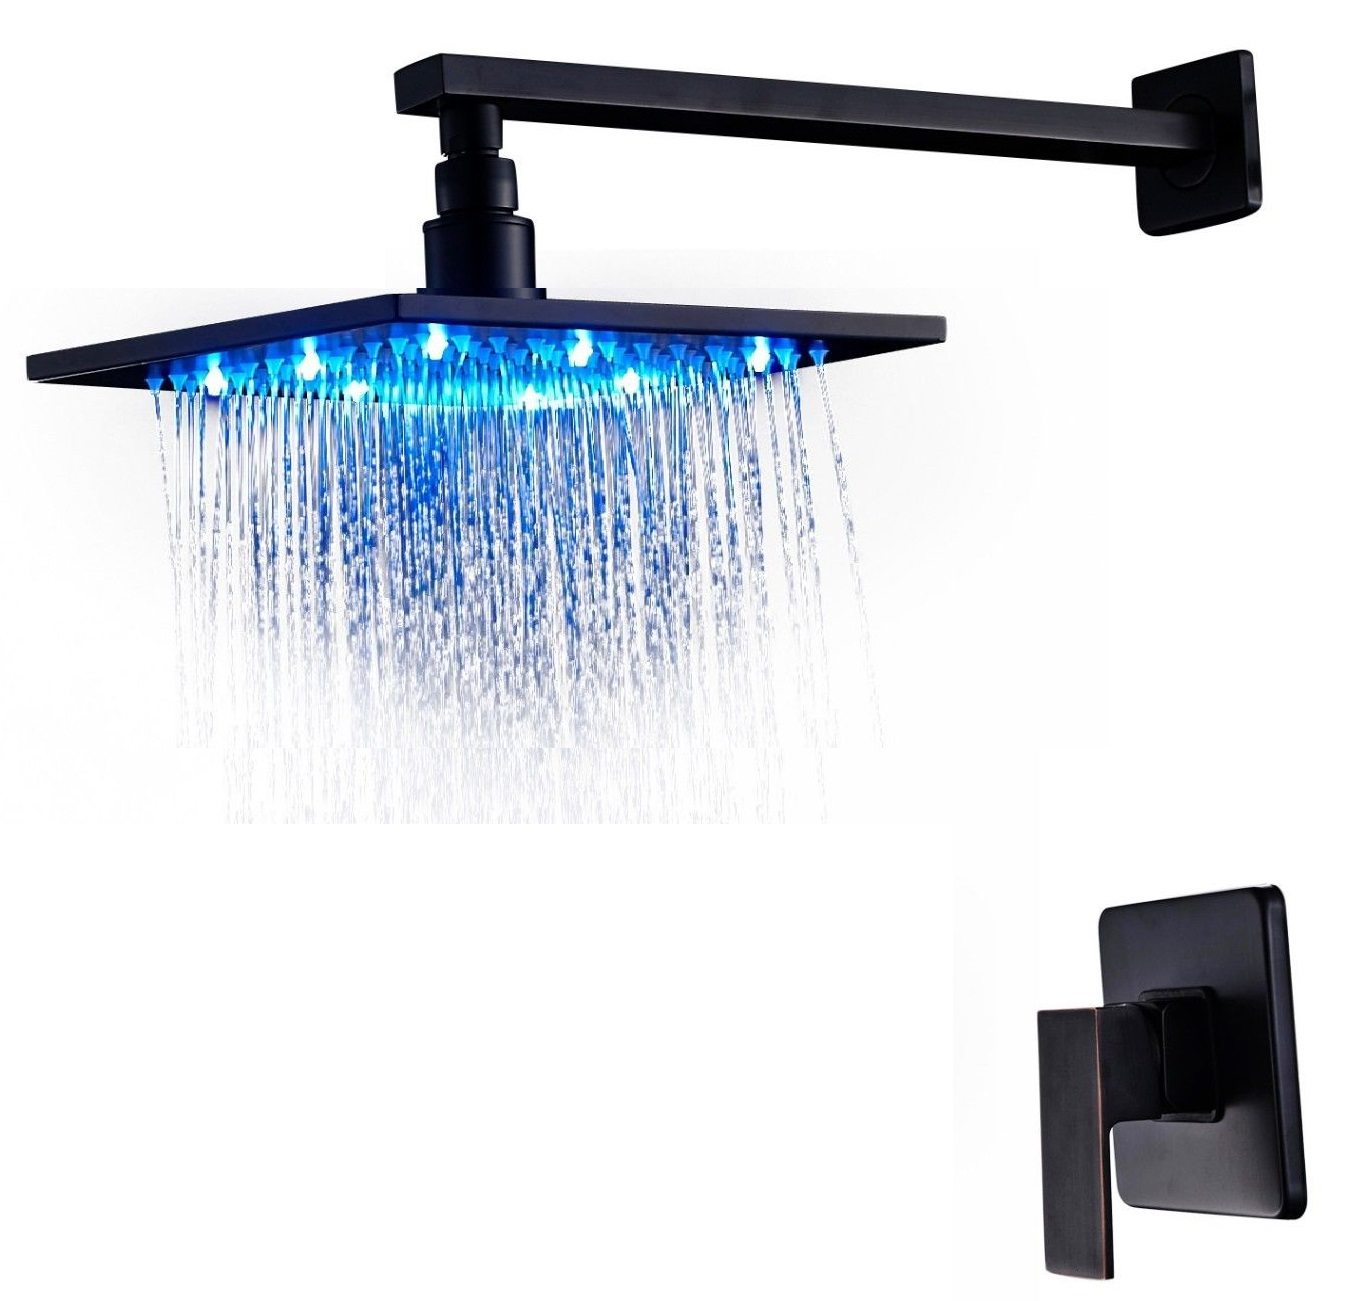 Buy Fontana Dark Oil Rubbed Bronze Bathroom Rain Shower Set With Led ...